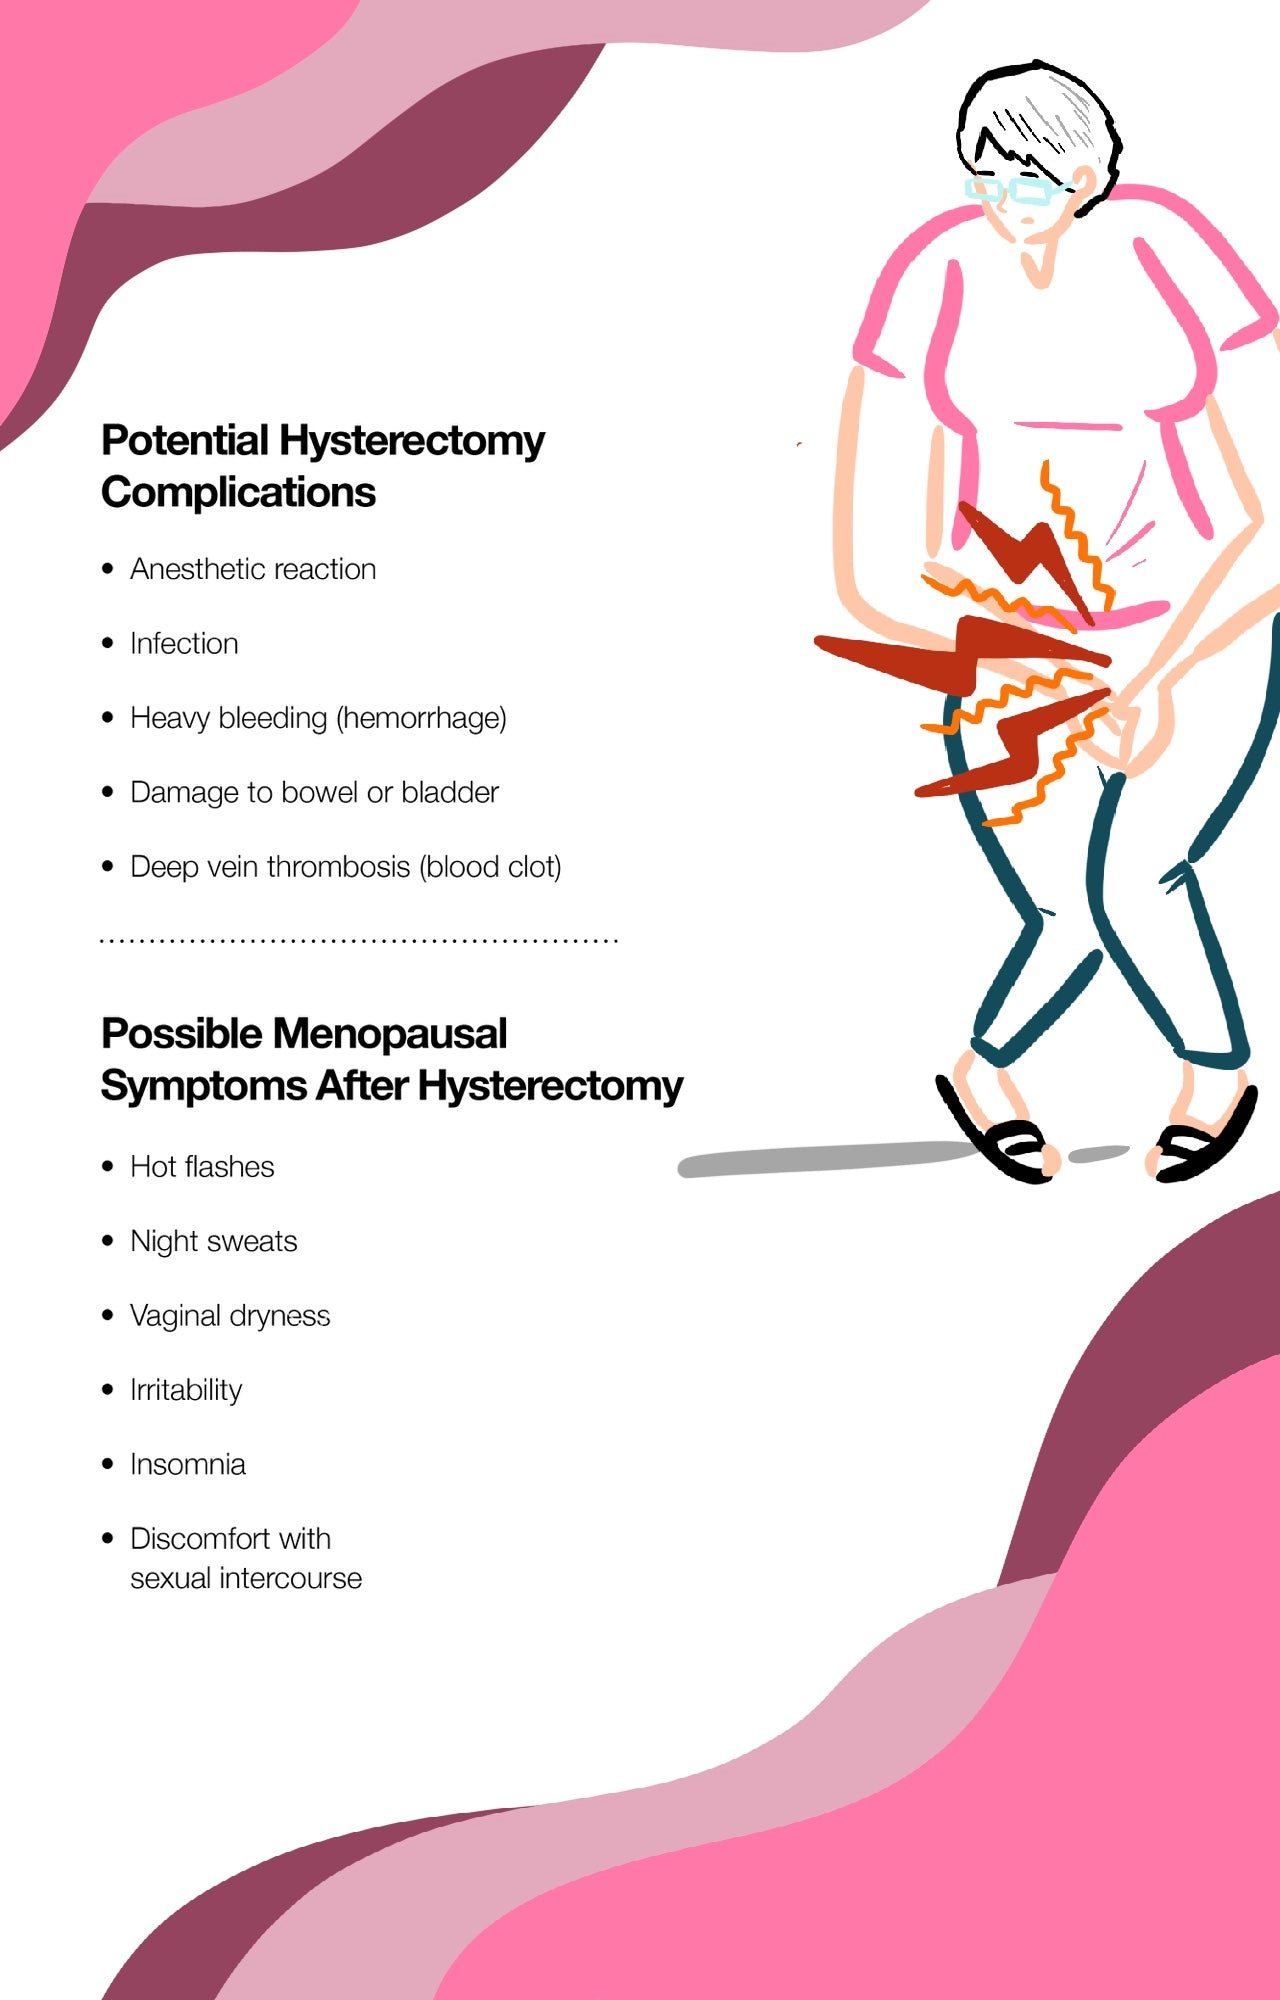 Potential Hysterectomy Complications